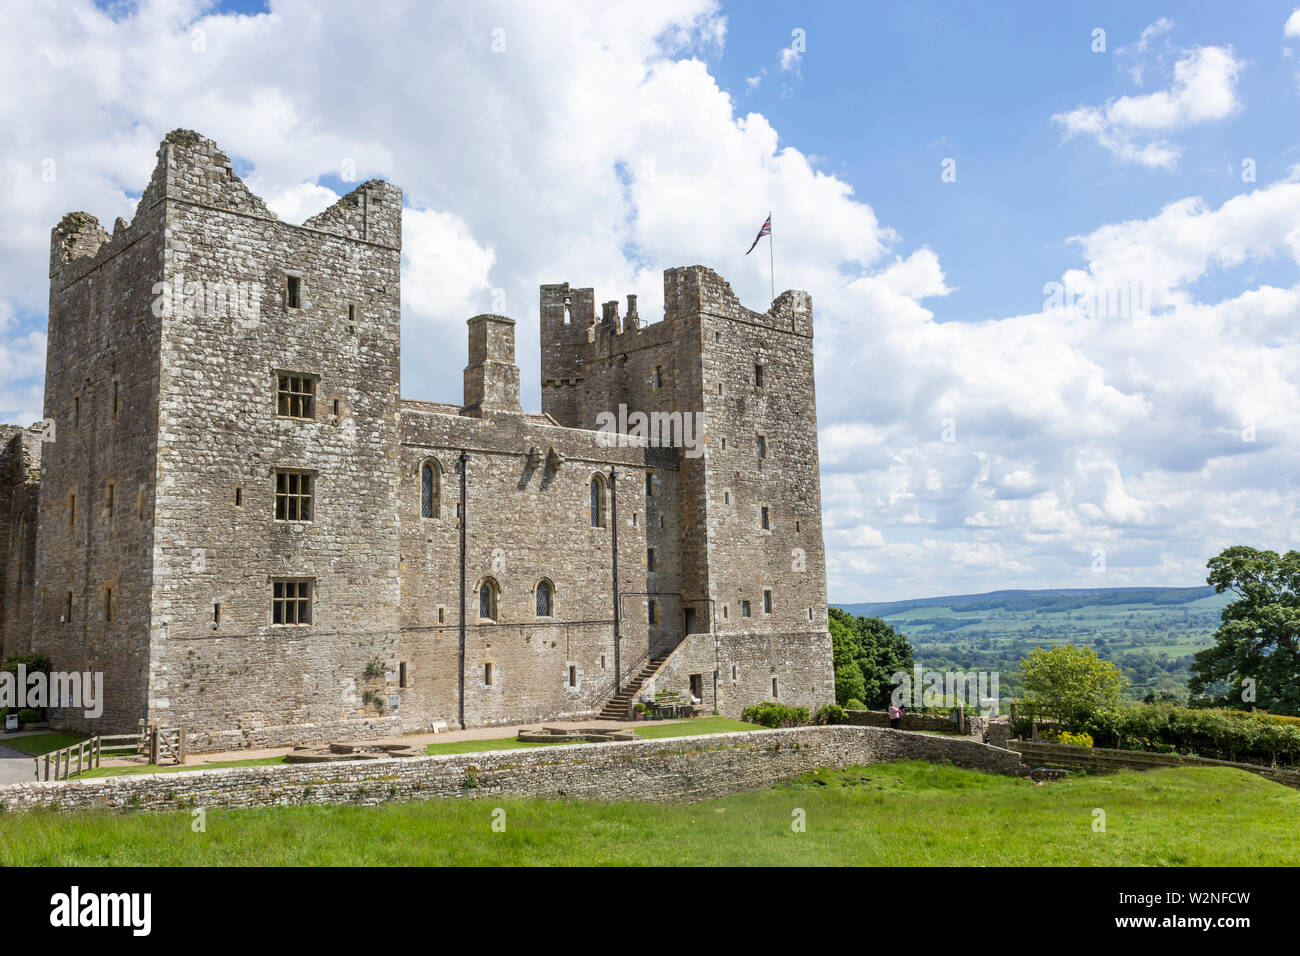 Bolton Castle, Wensleydale, Yorkshire, England. Mary, Queen of Scots was held prisoner at Bolton for six months in 1568. - Stock Image